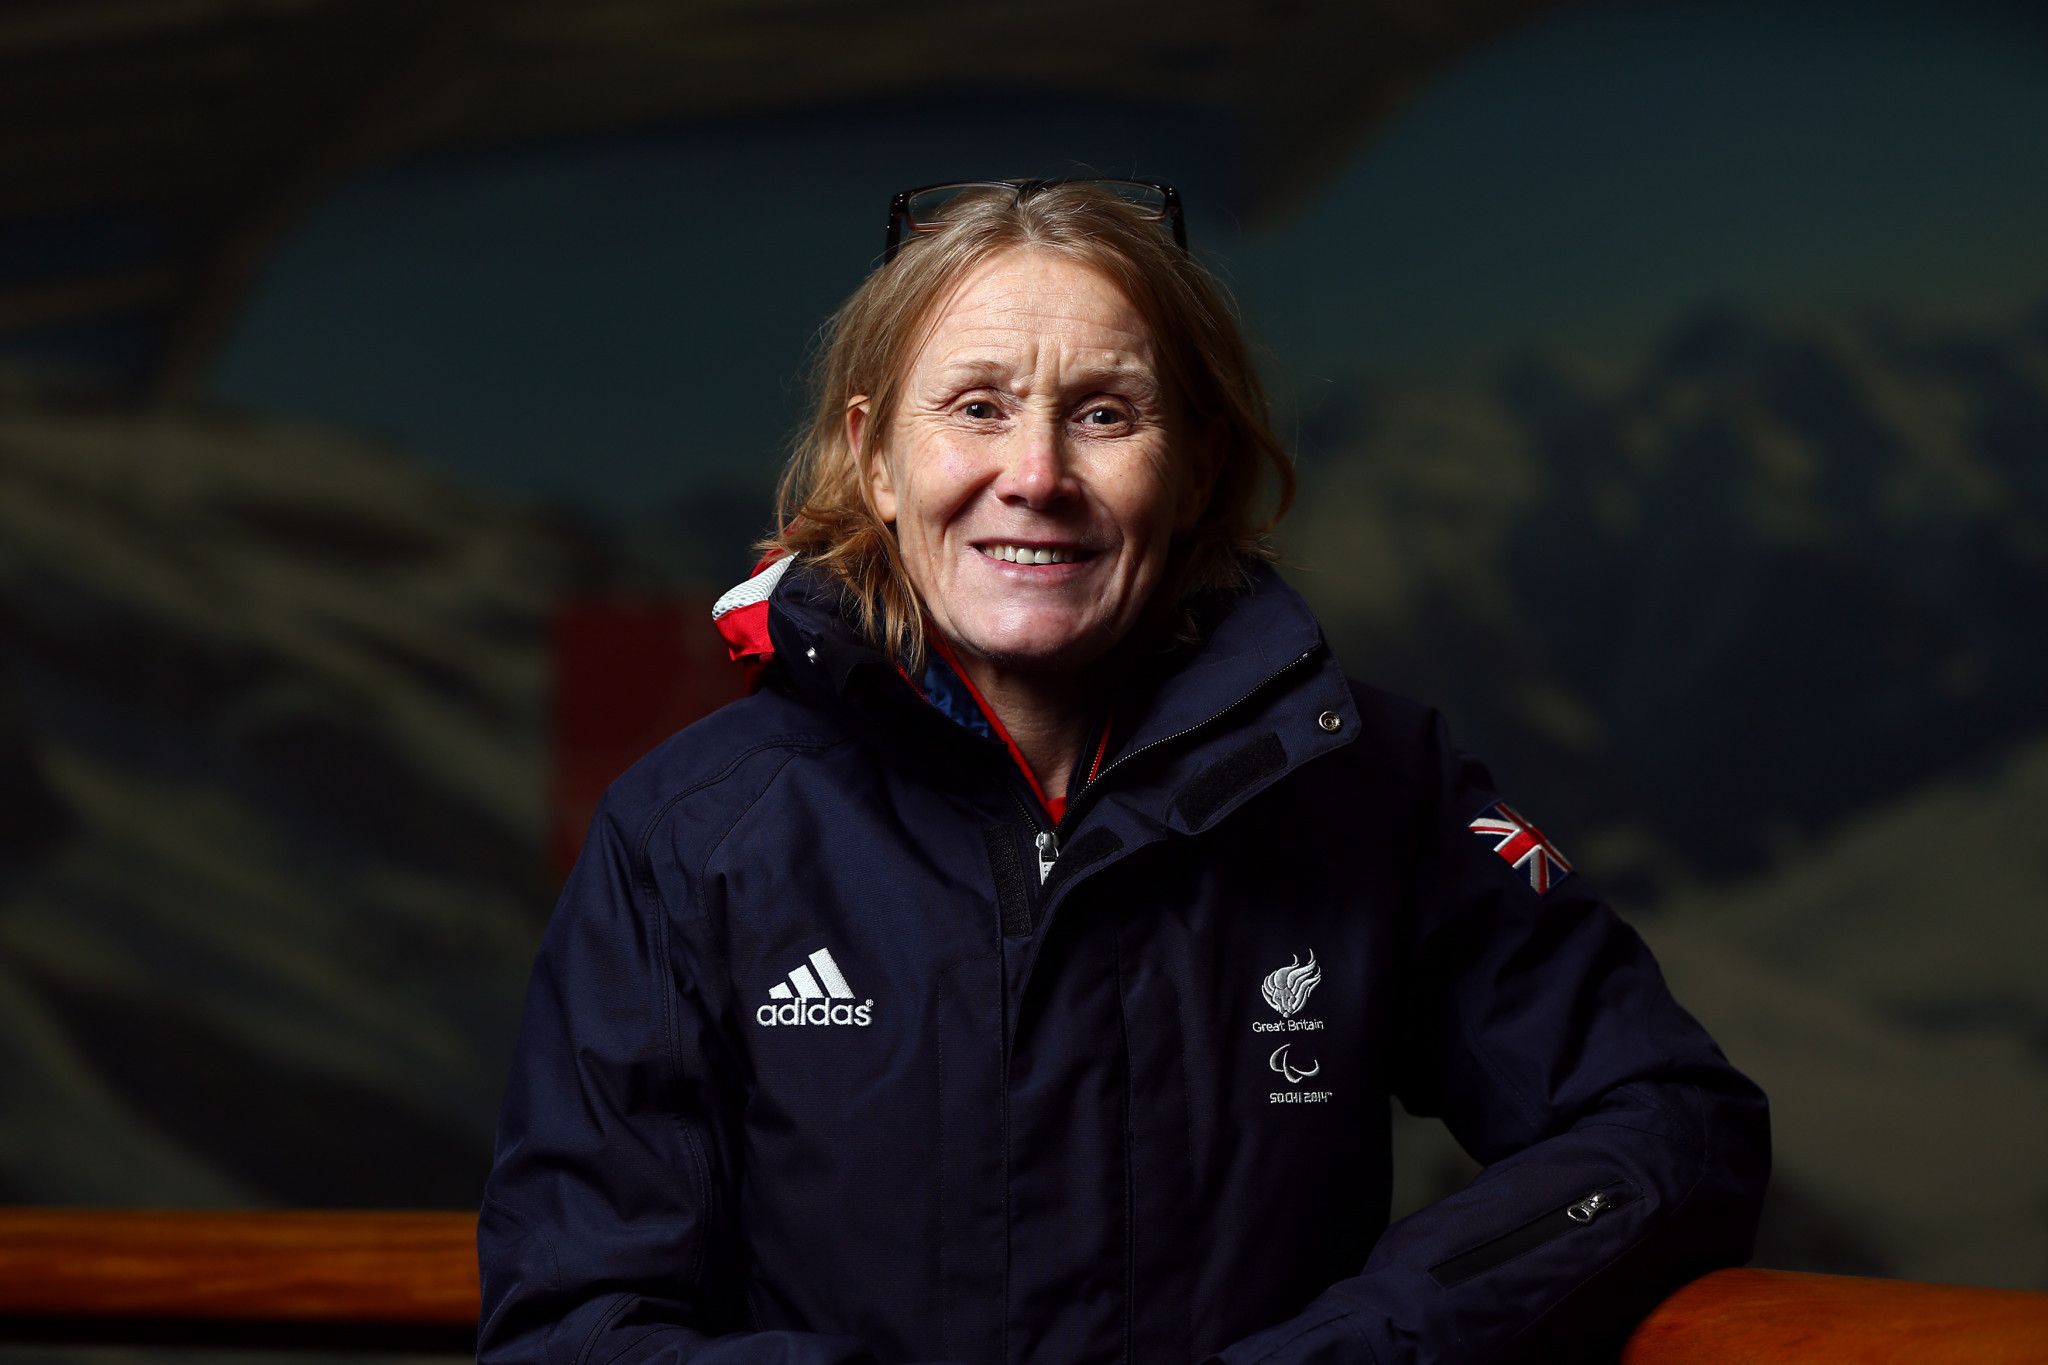 Briscoe named ParalympicsGB Chef de Mission for Tokyo 2020